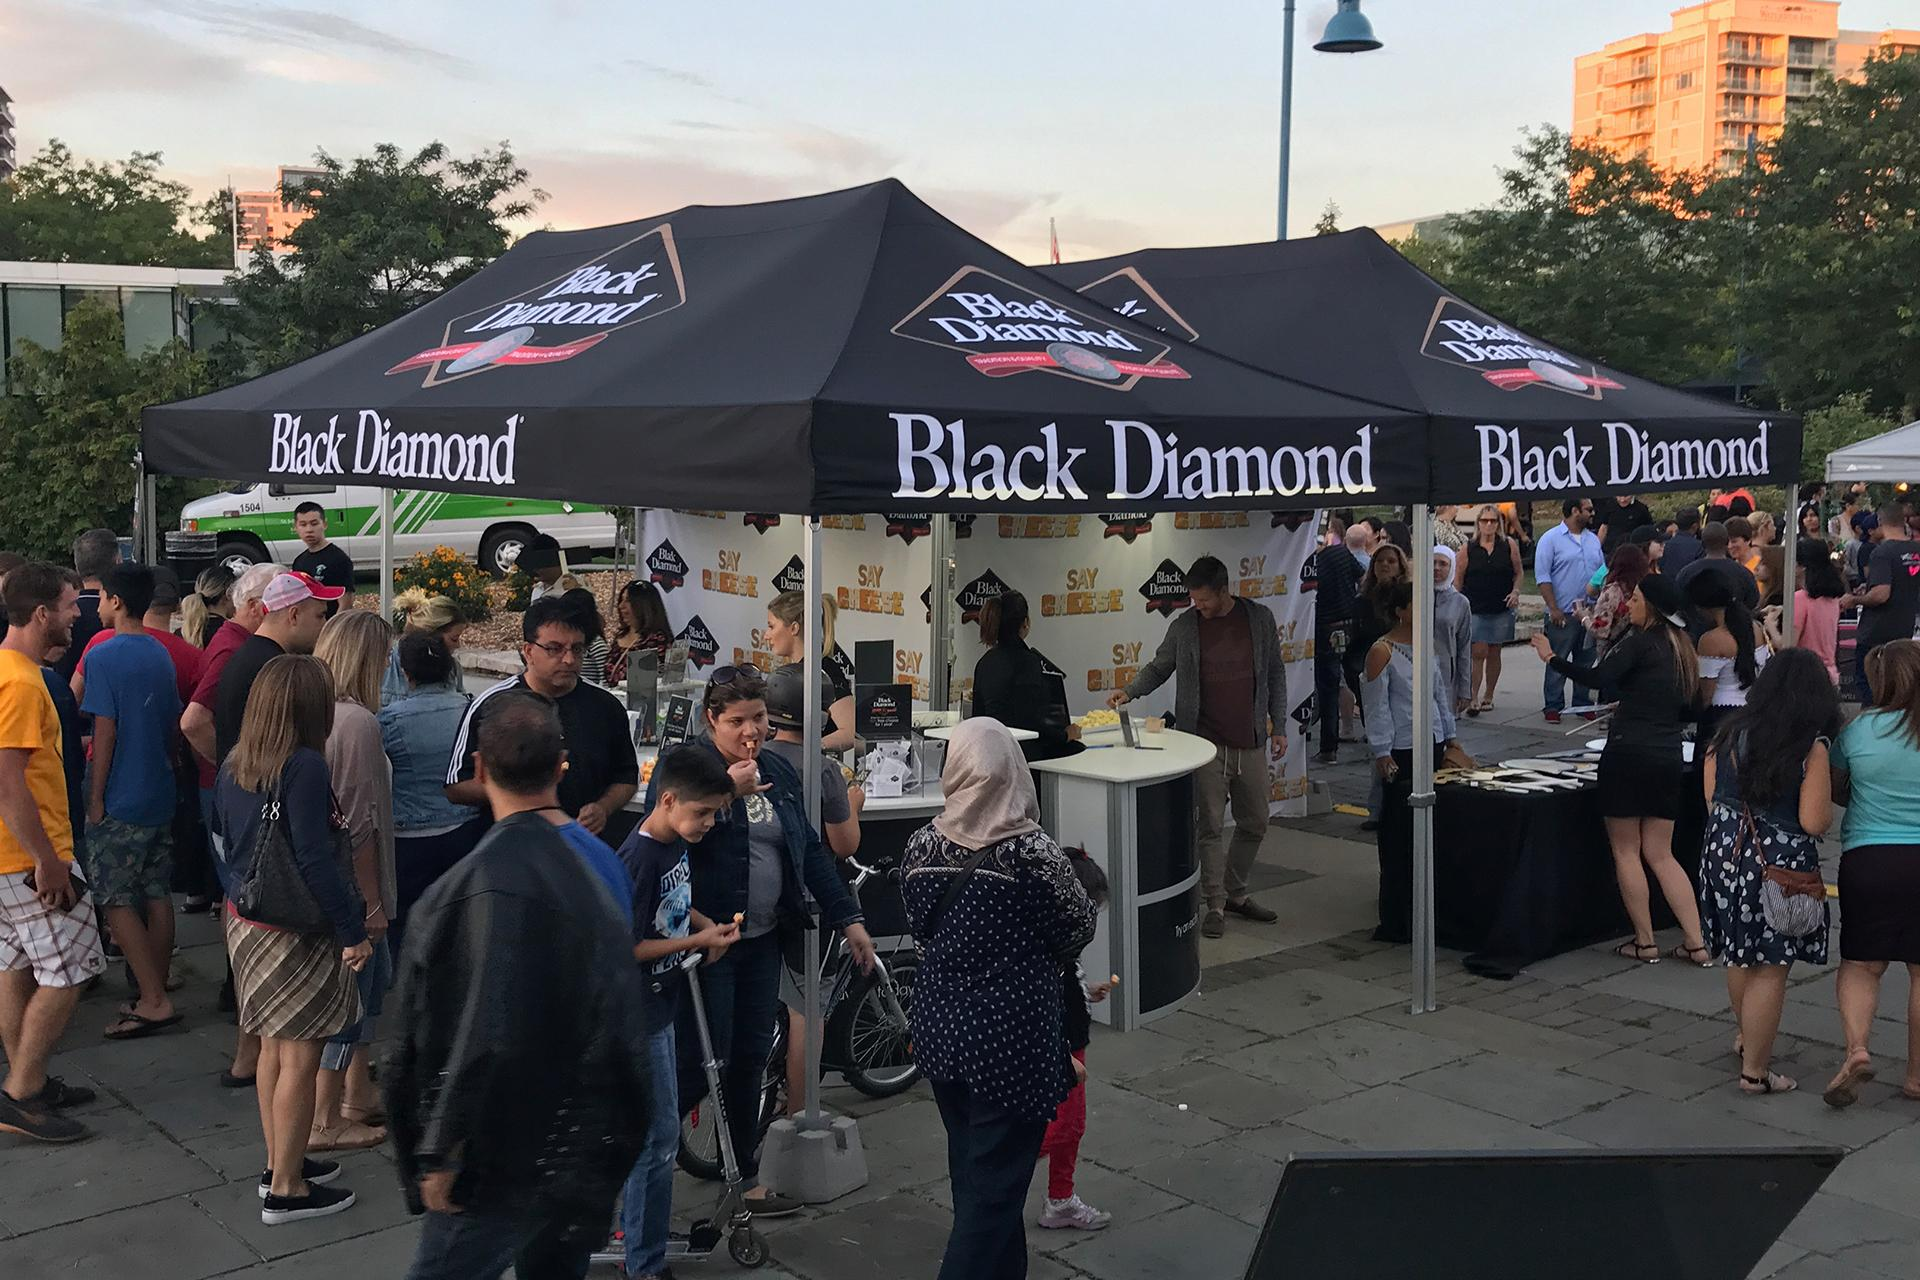 Black Diamond Cheese Activation